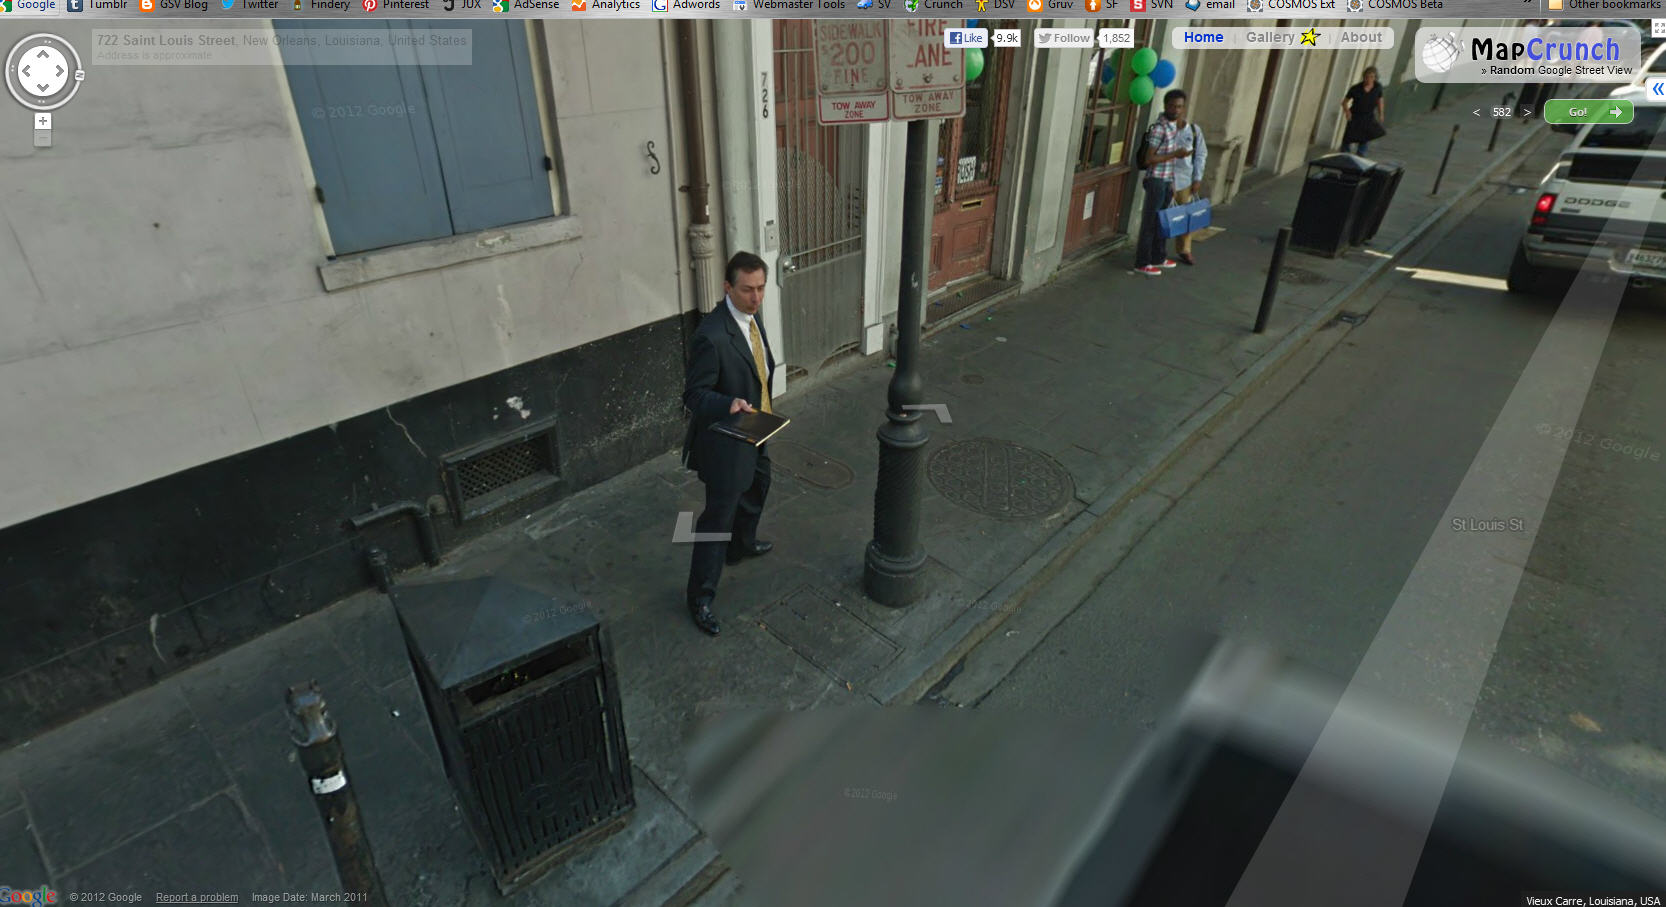 google-street-view-really-did-forget-to-blur-faces-in-new-orleans